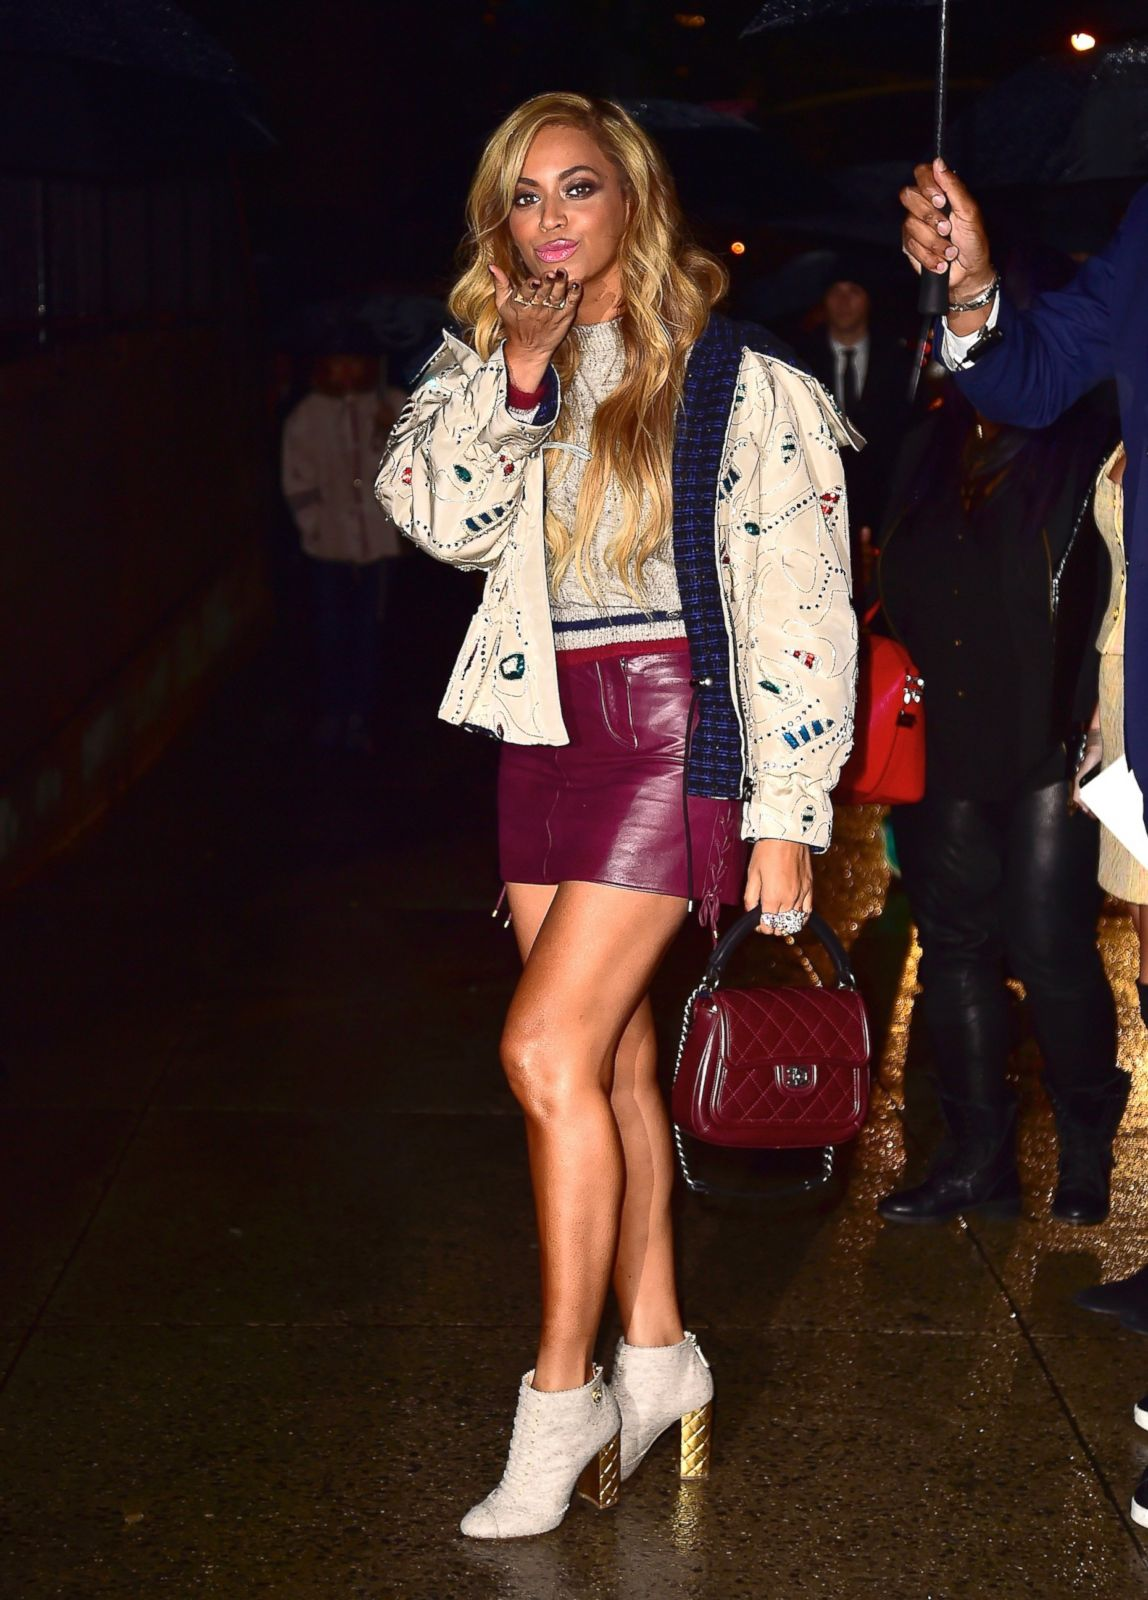 Beyonce Shows Off Her Legs In A Short Skirt Picture